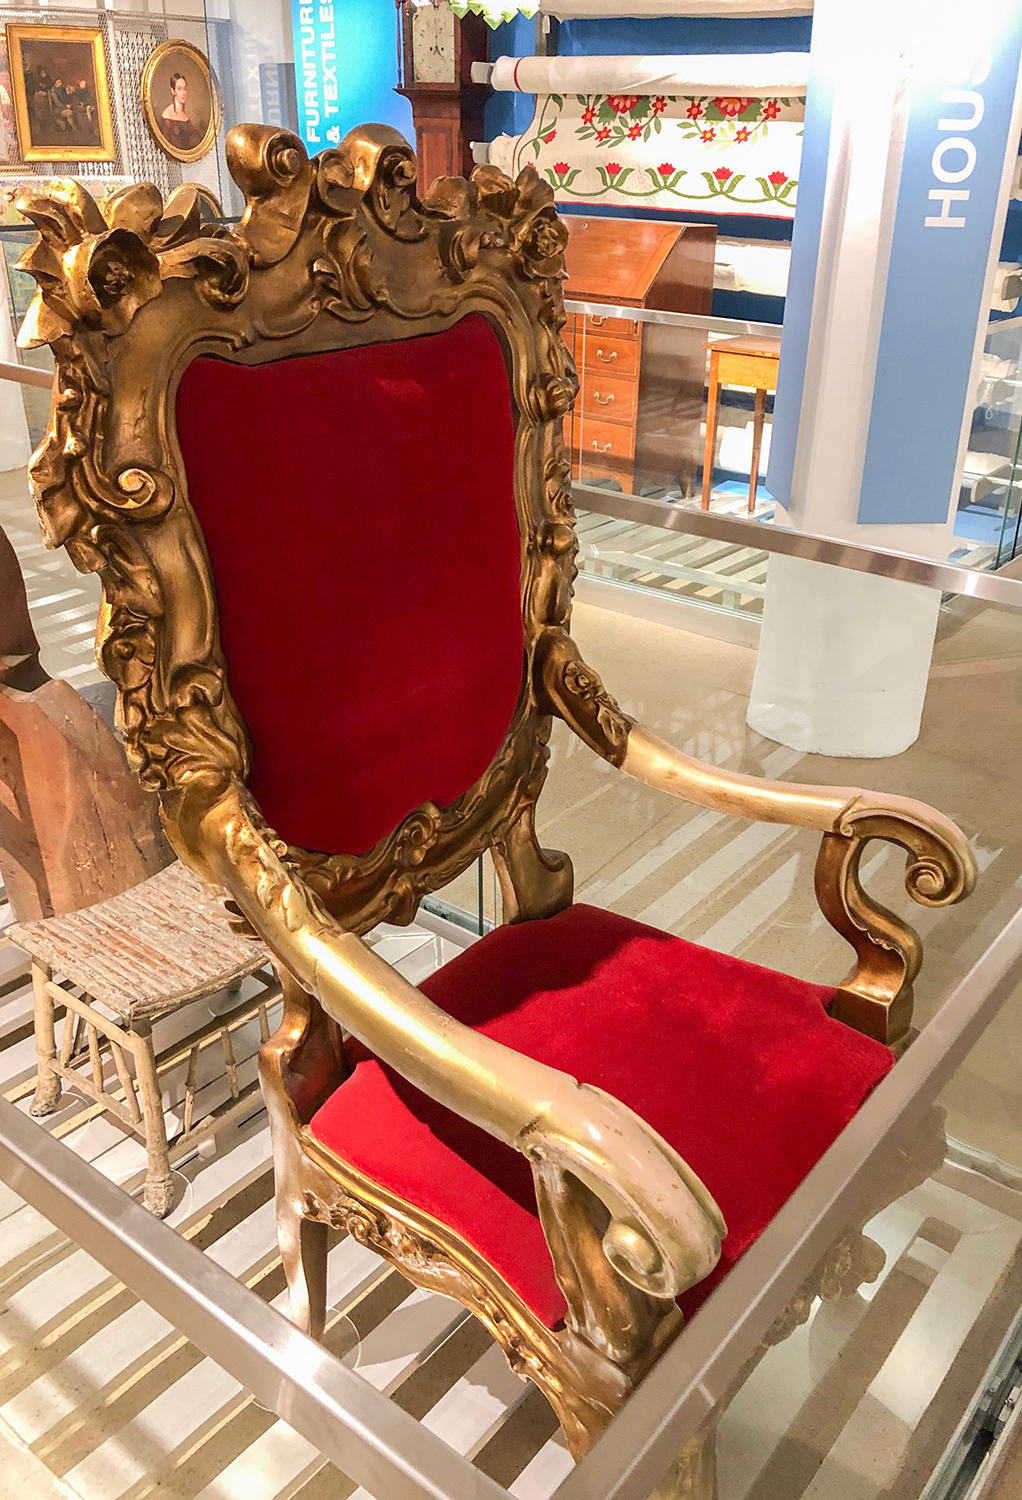 The Santaland chair from Kaufmann's Department Store, on display in Visible Storage.